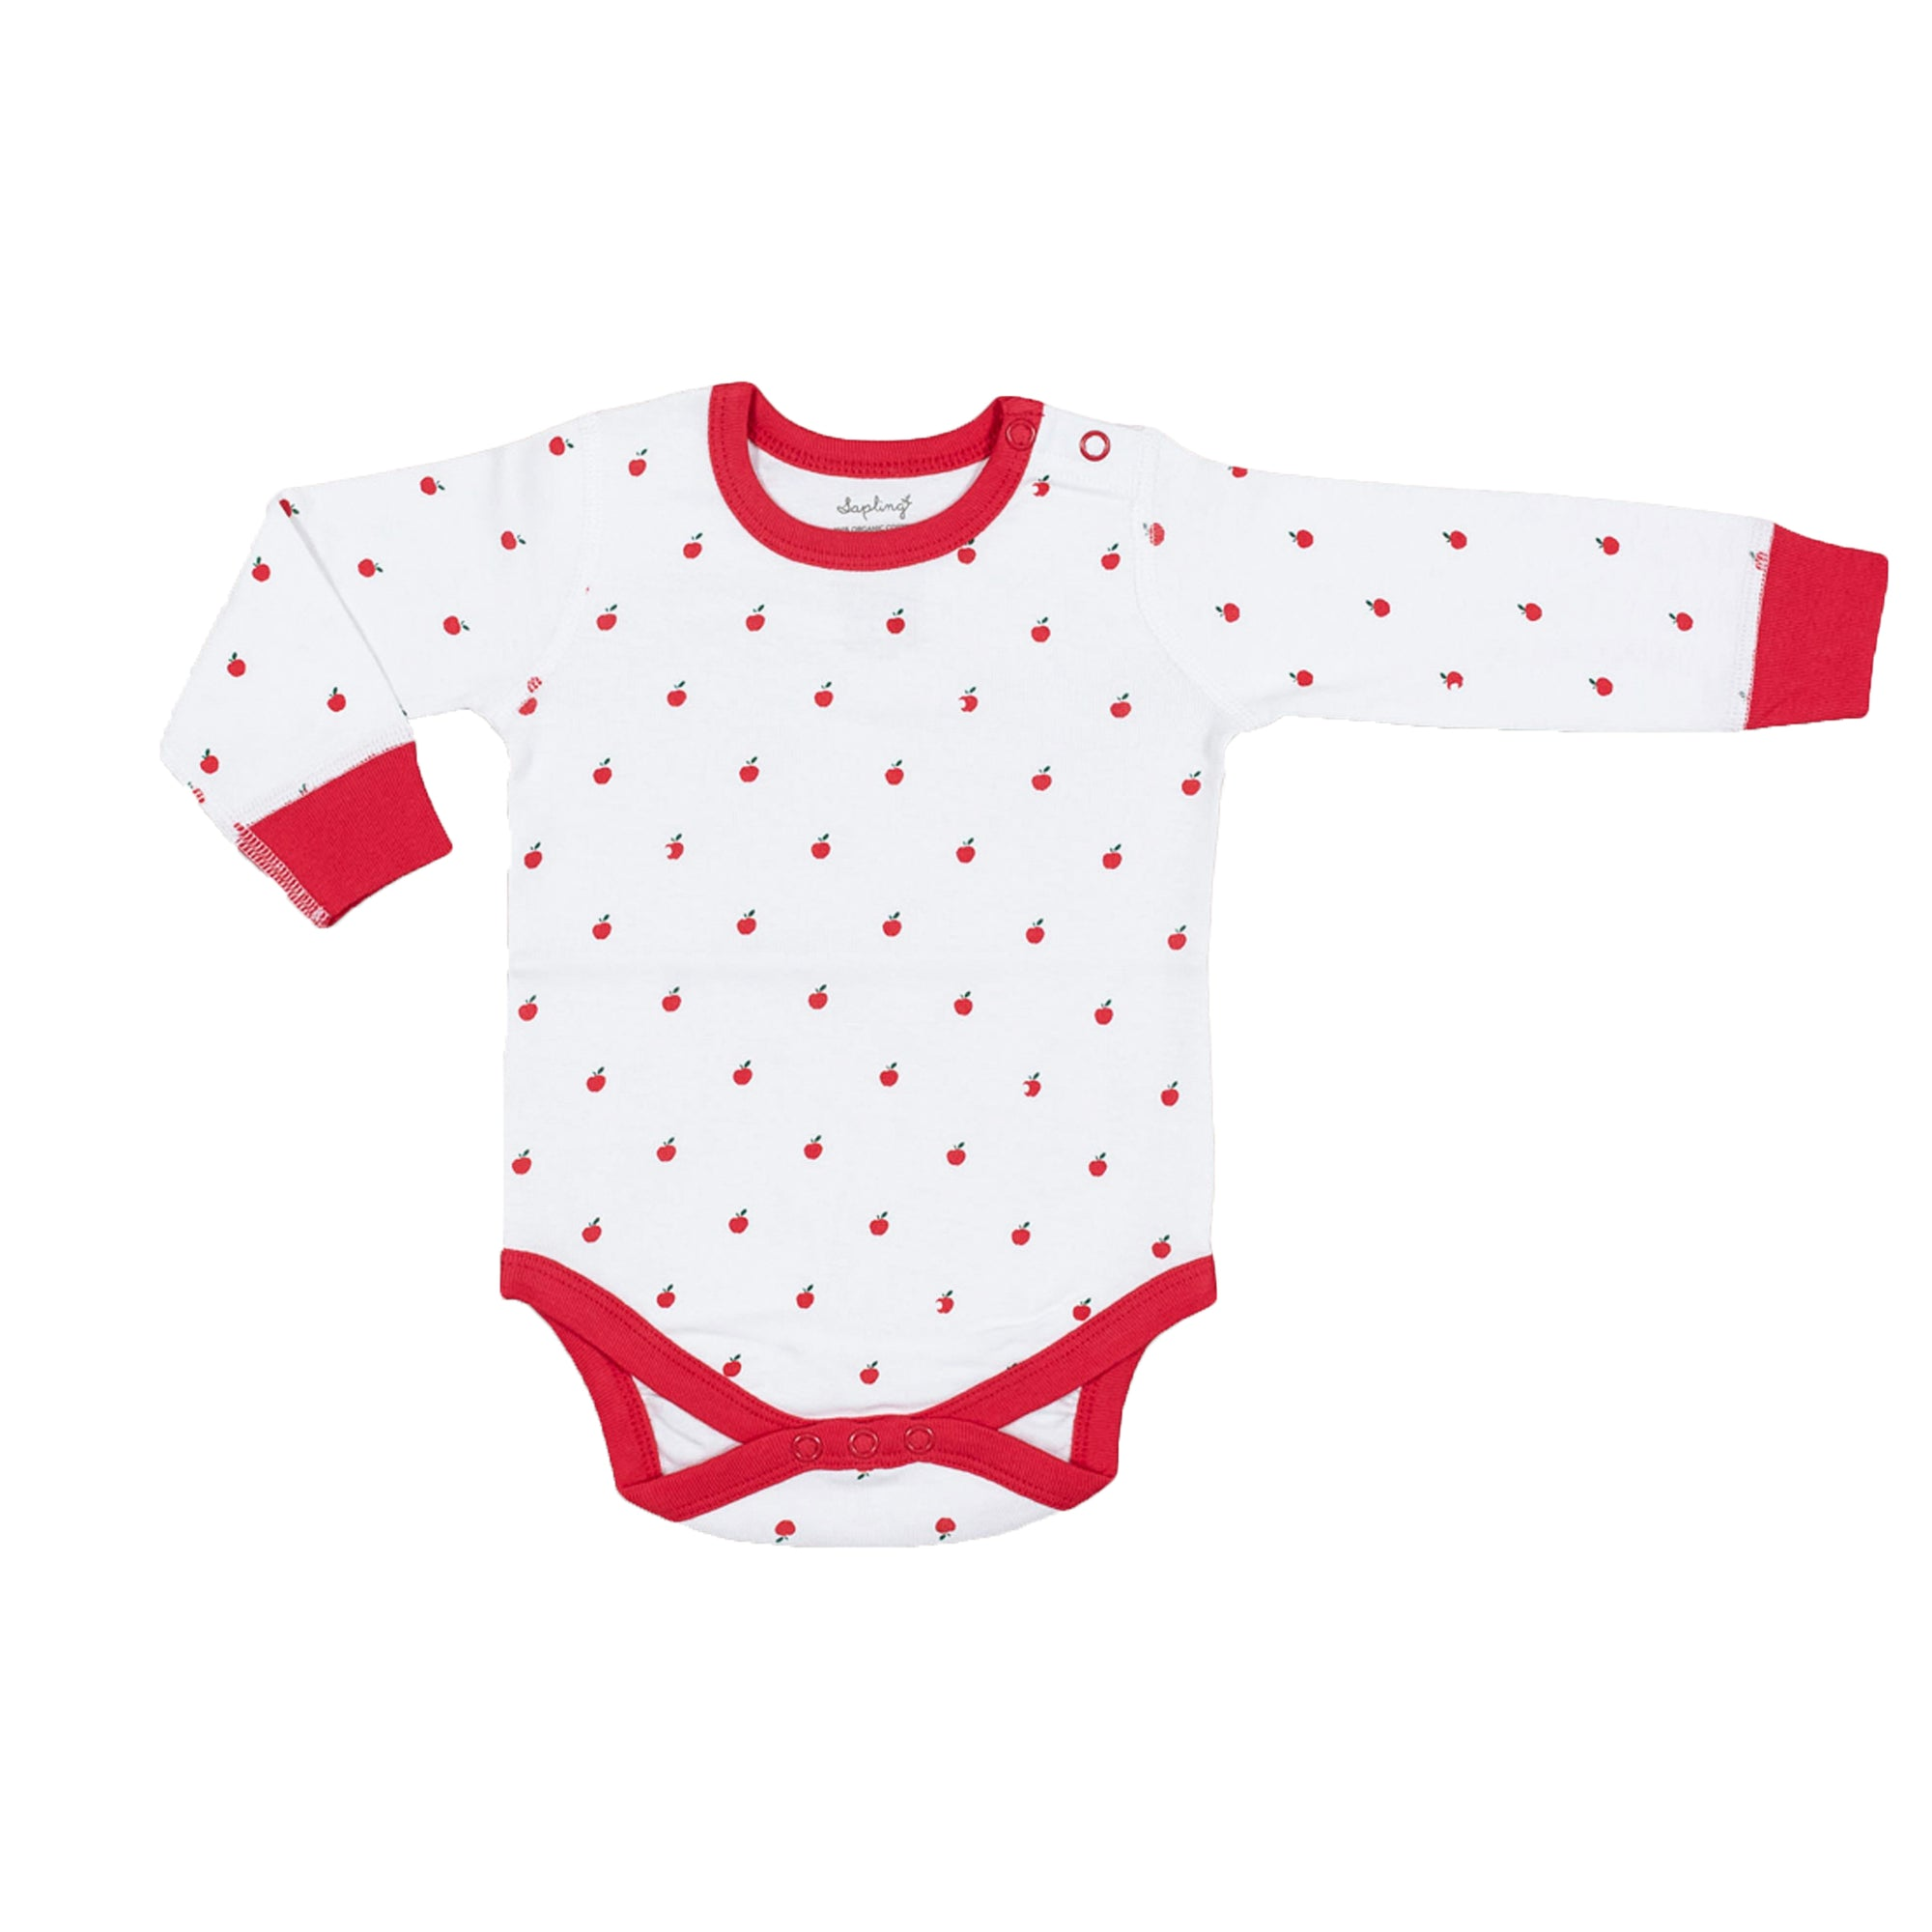 Sapling Organic Cotton soft apple long sleeve bodysuit for baby